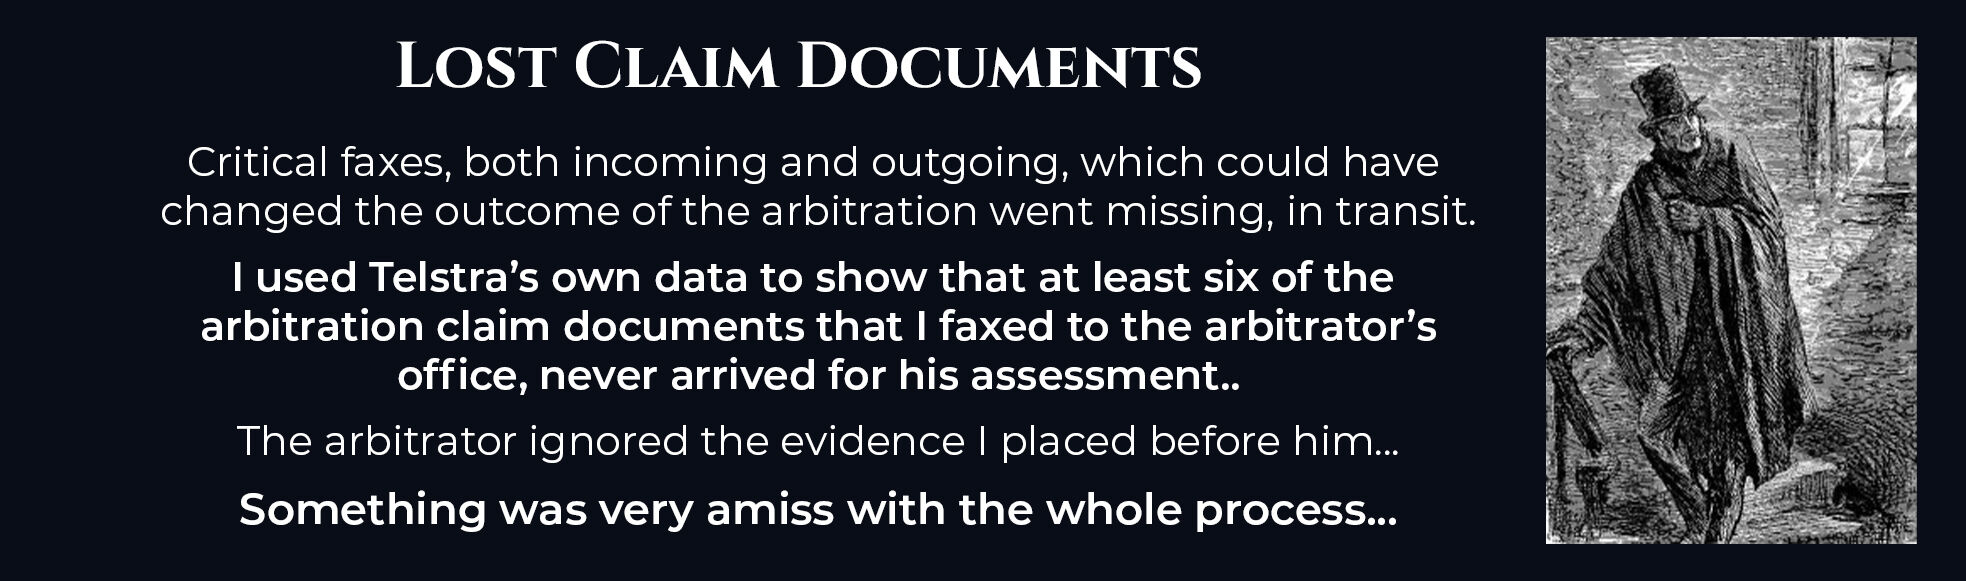 Absent Justice - Lost Claim Documents